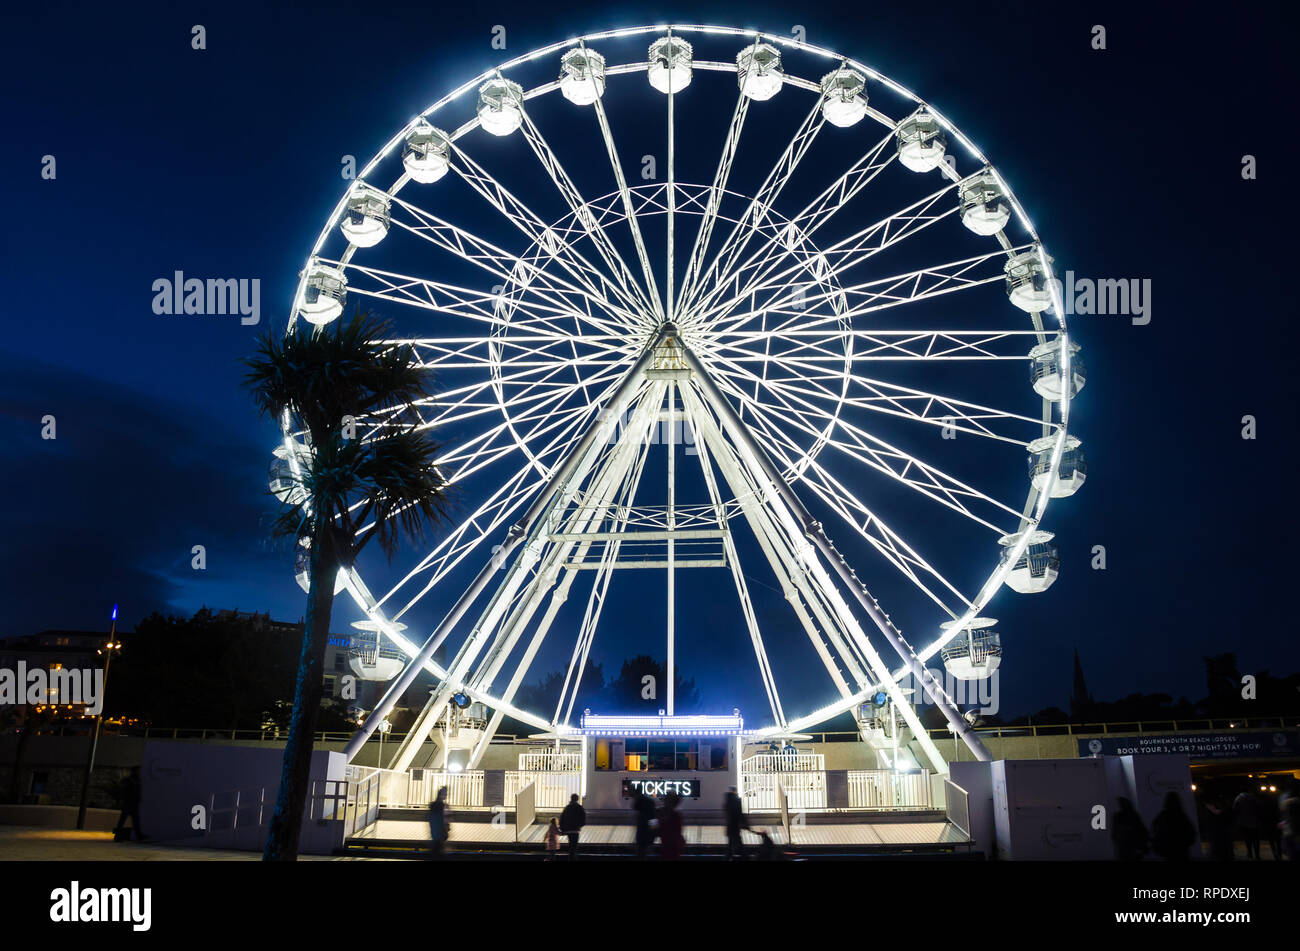 The big wheel at Bournemouth stands tall into the night sky and is brightly lit up white. Stock Photo